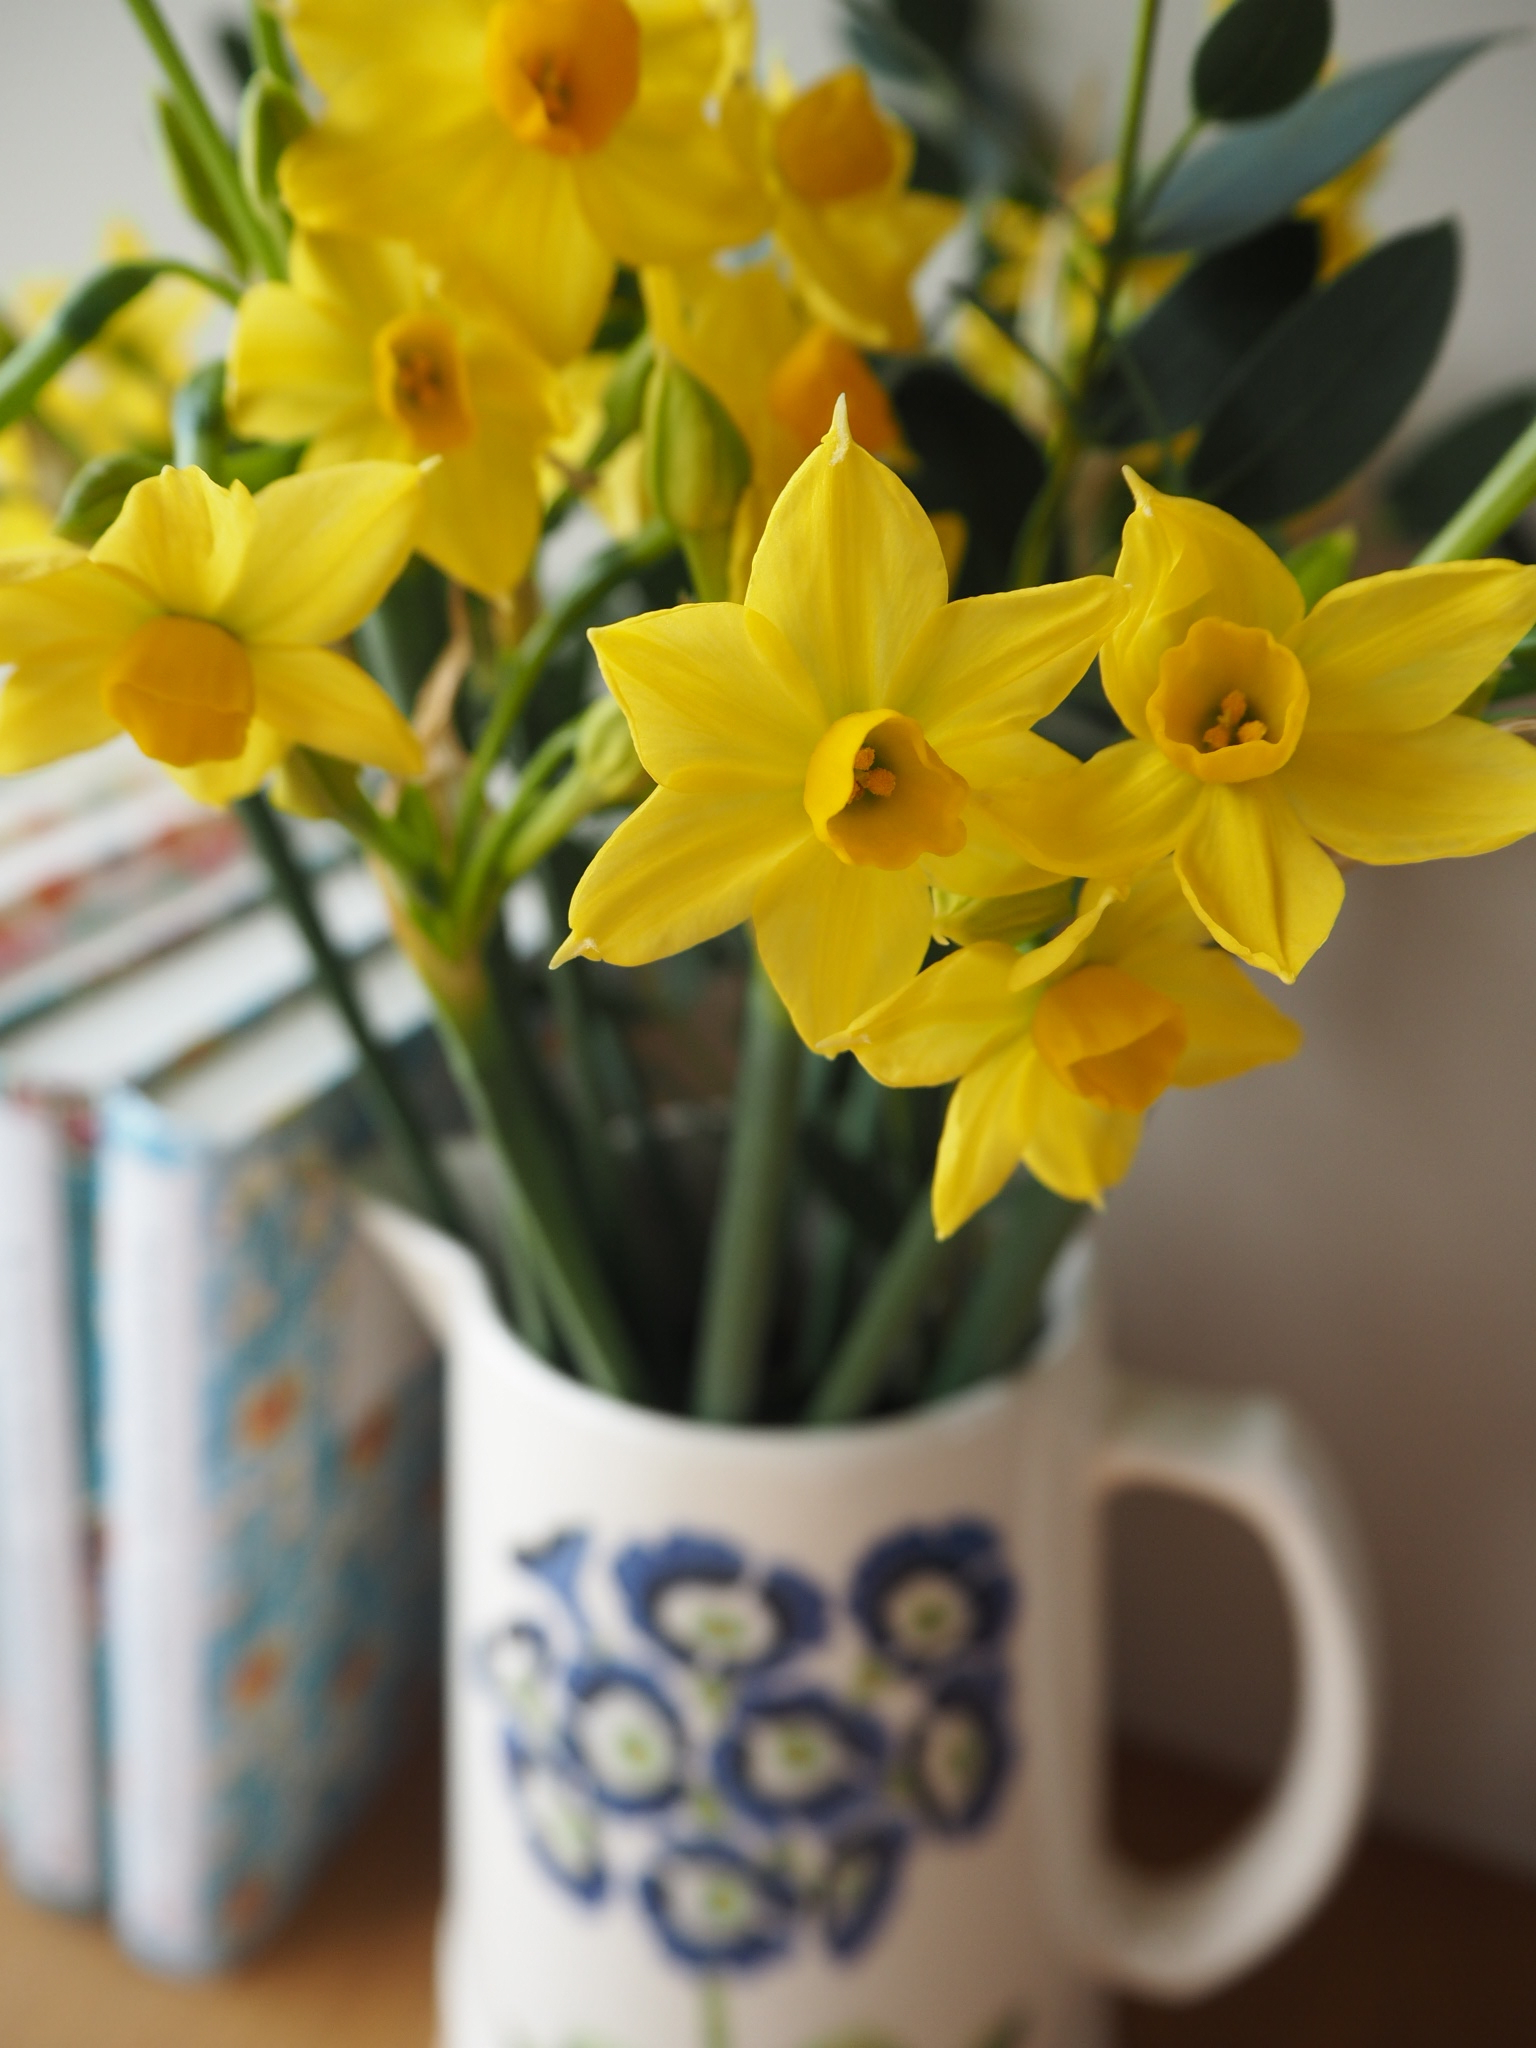 Jugs of spring flowers herald the promise of spring in the home.